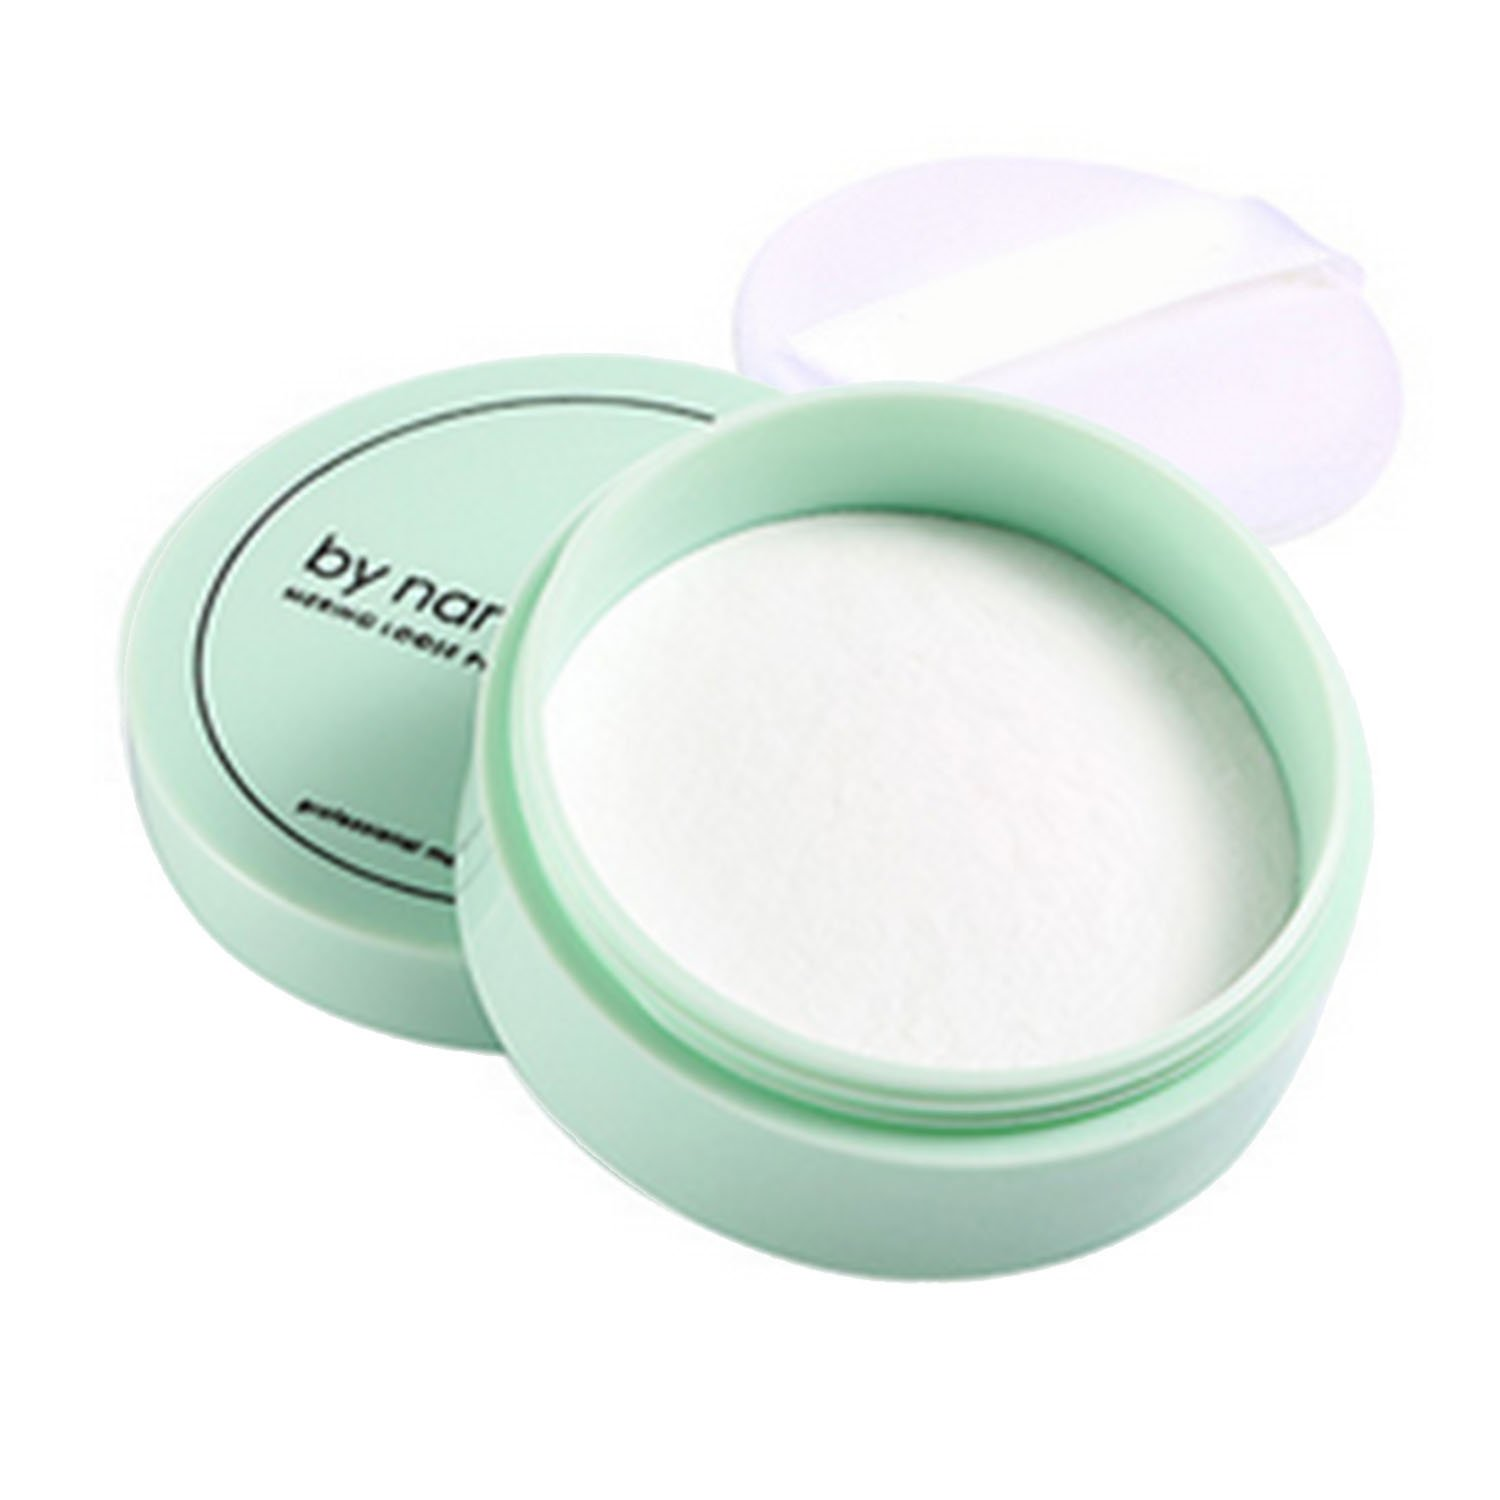 Elisona-Waterproof Cosmetic Makeup Loose Powder Foundation Finishing Powder Skin Finish Contour definition Setting Powder with Powder Puff for Multicultural women Color 2